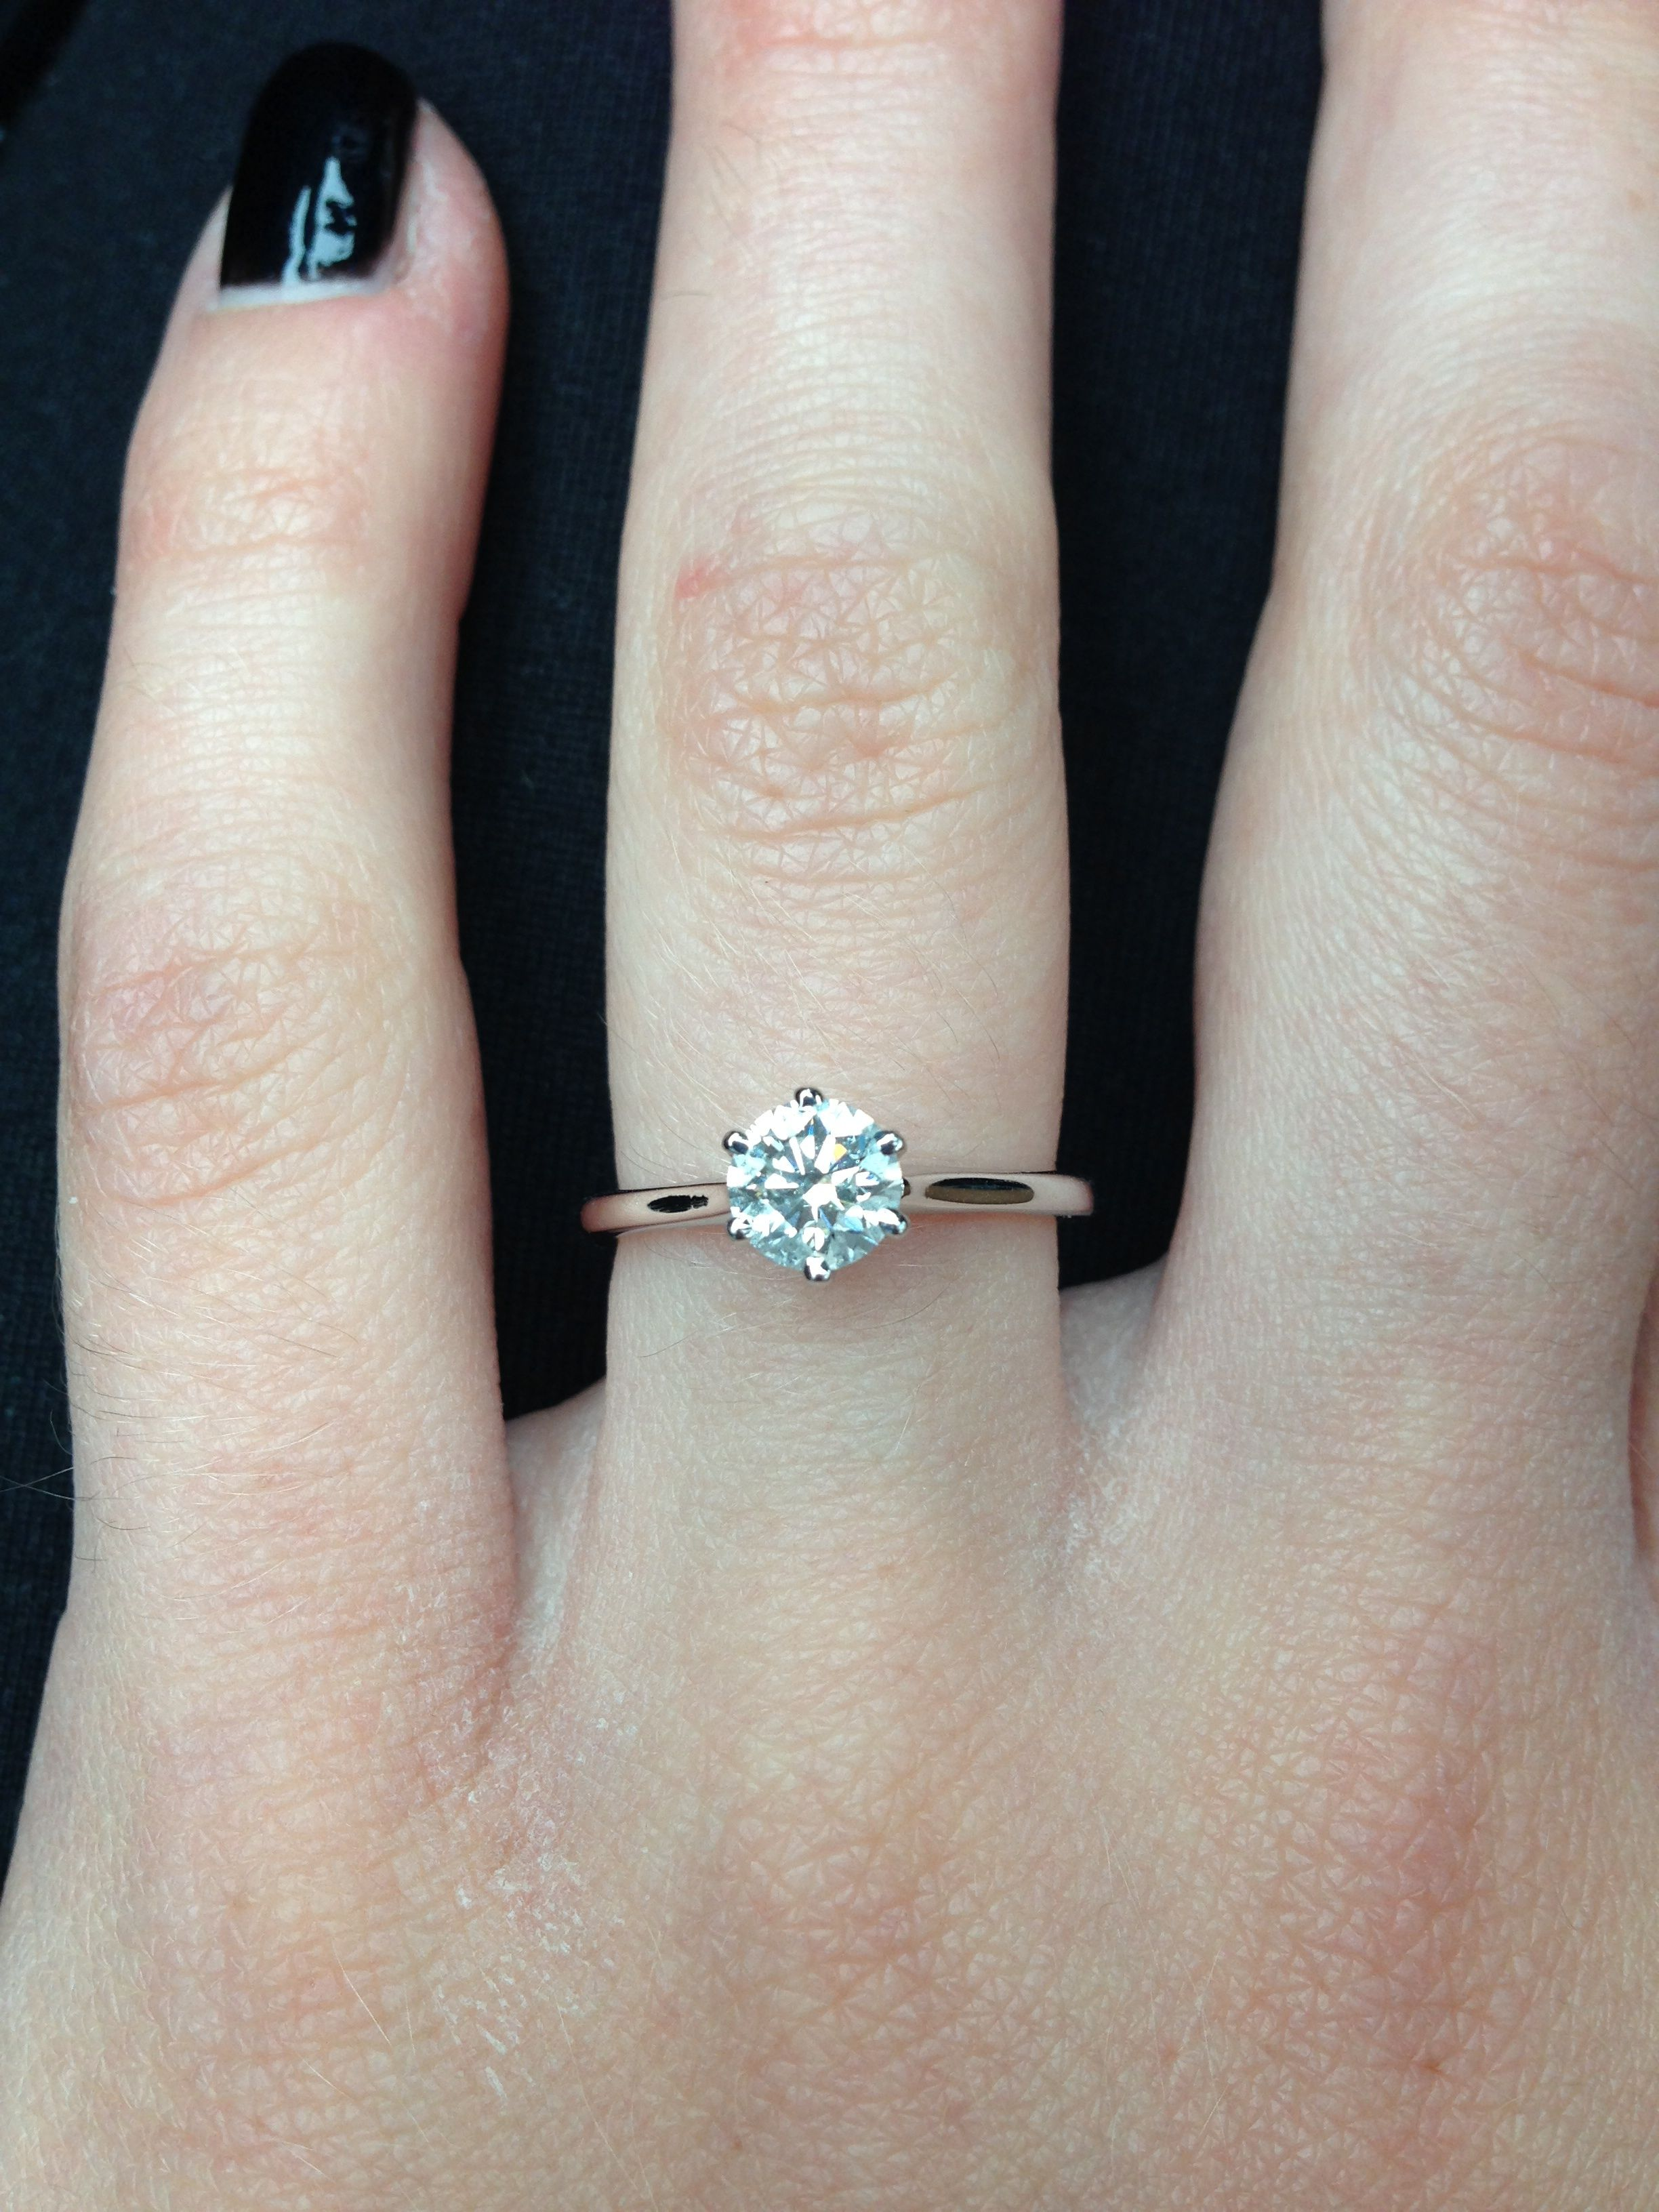 Picking A Clic Engagement Ring From Blue Nile Opinions Show Me Your Pics